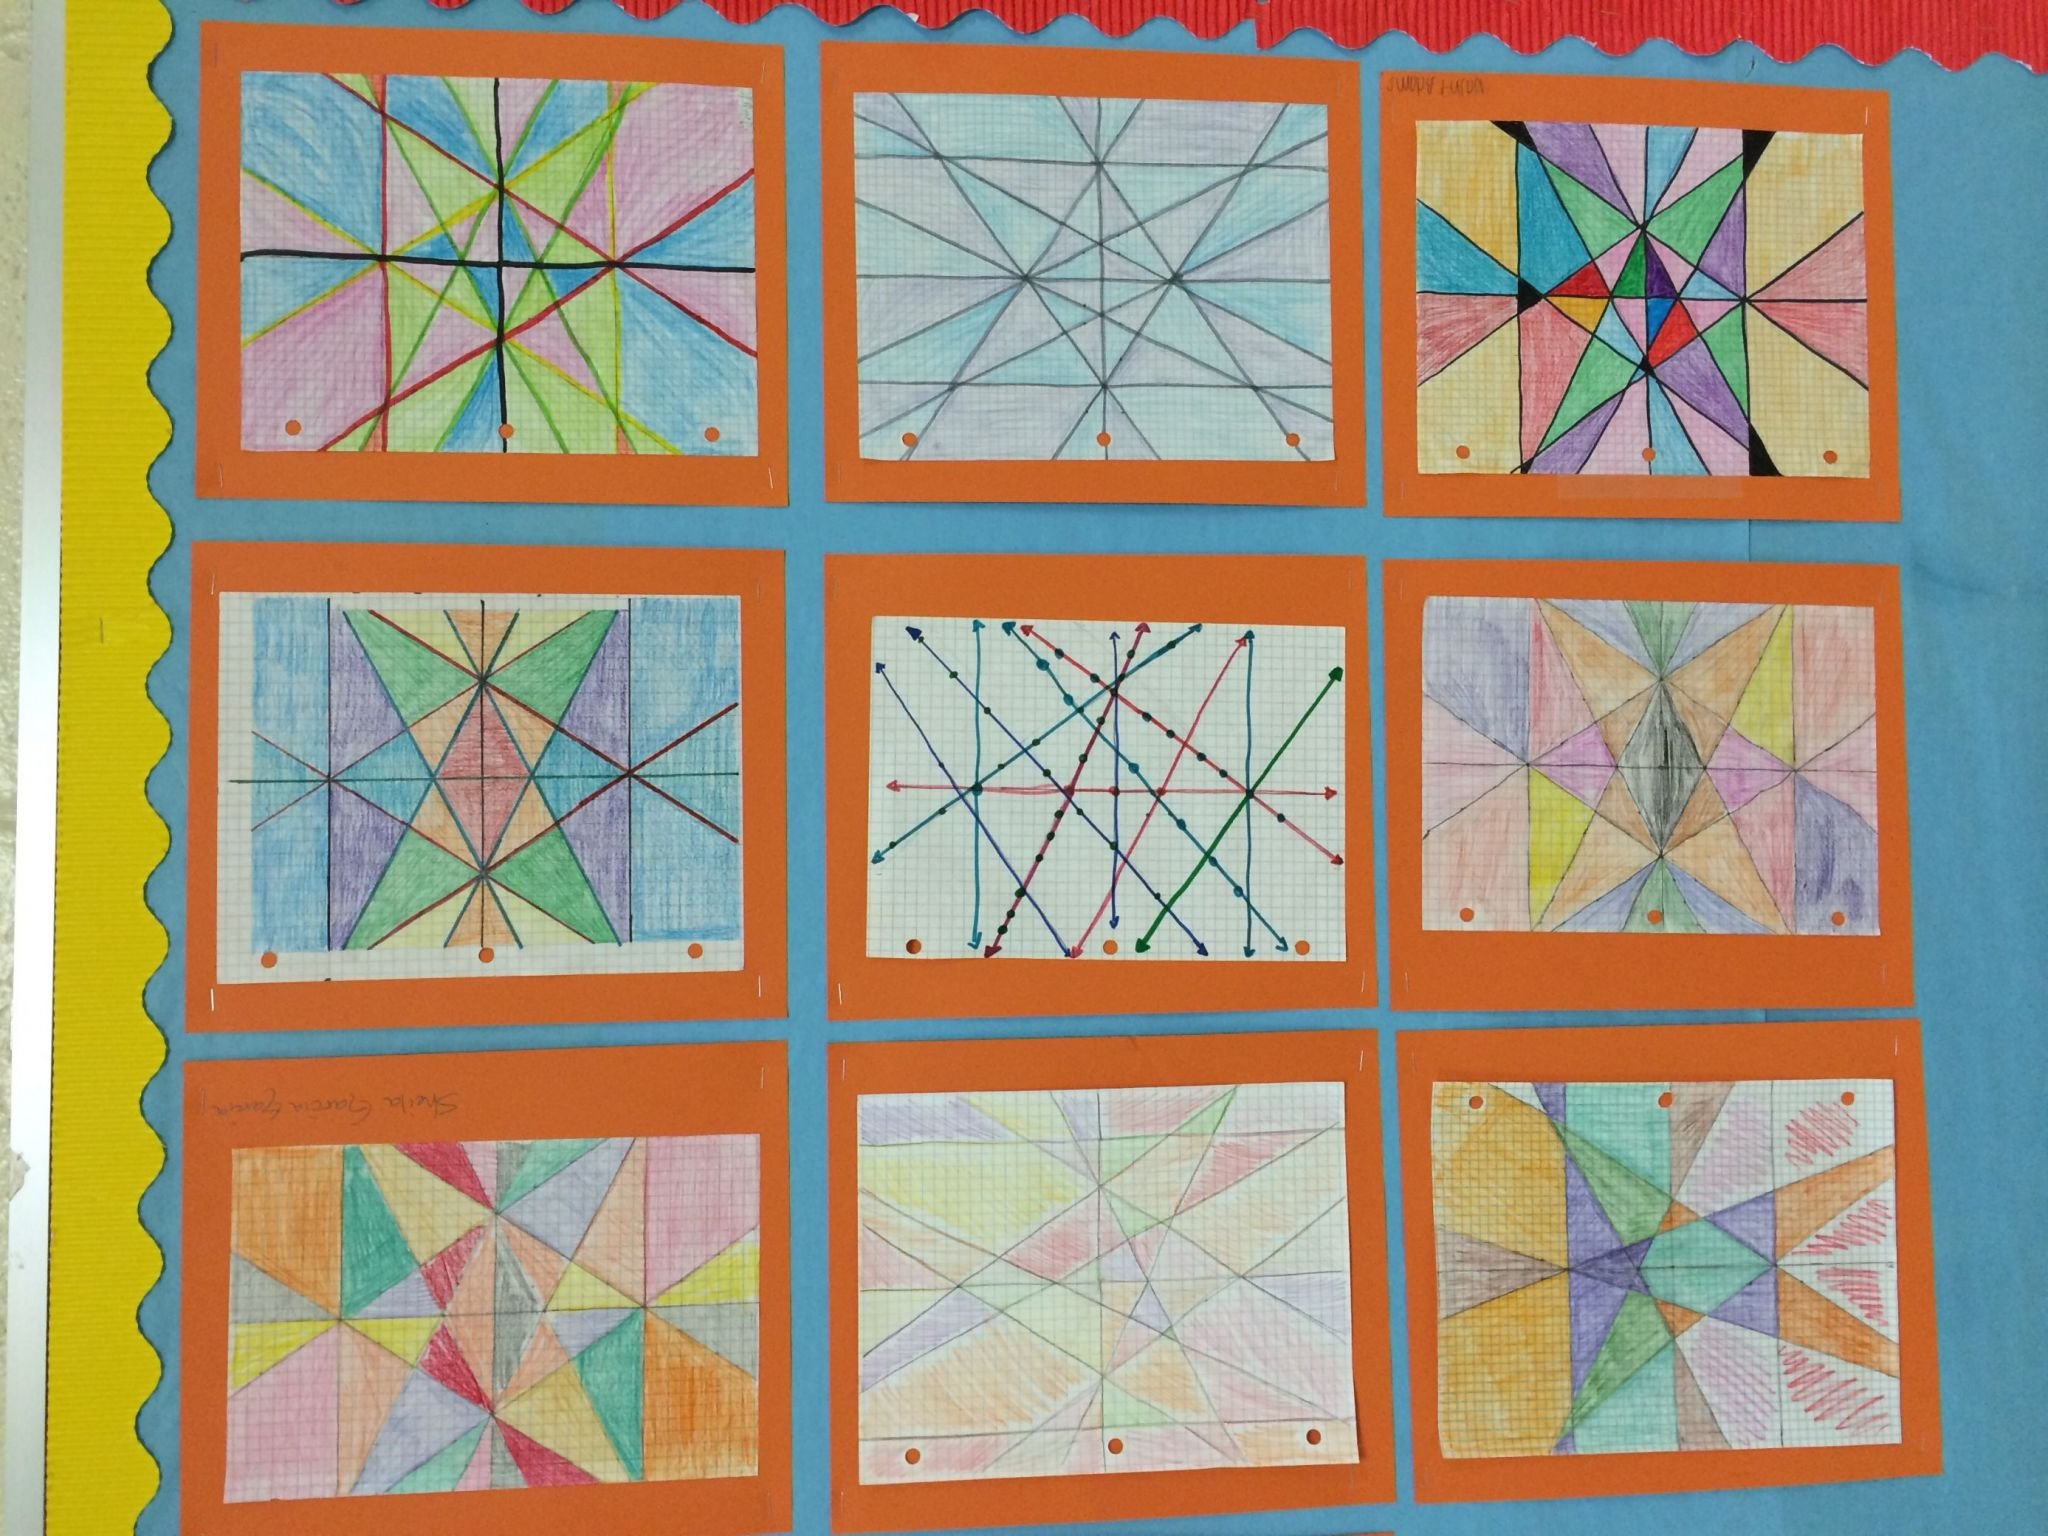 Stained Glass Blueprints Math Worksheet Answers  Briefencounters Inside Stained Glass Blueprints Math Worksheet Answers